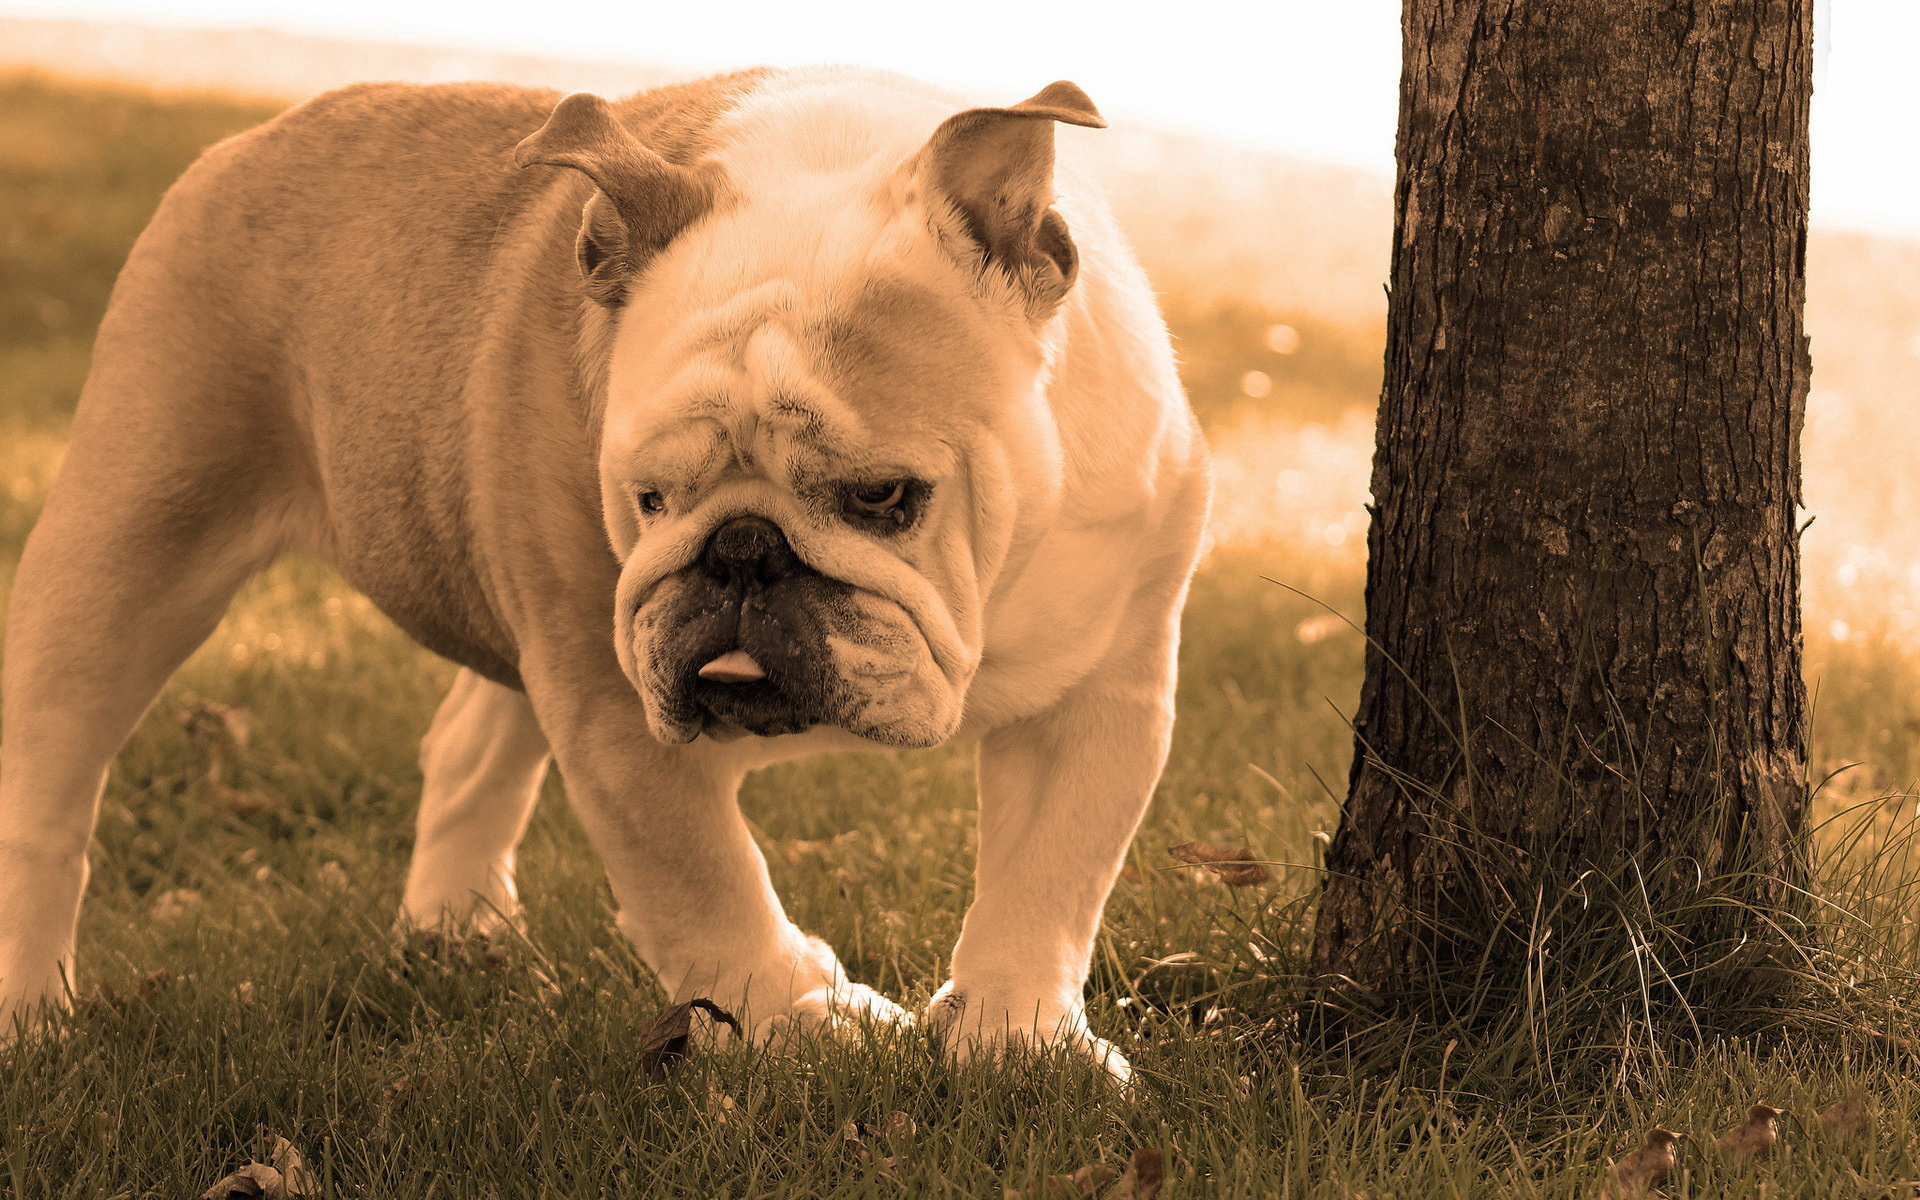 Bulldog-hd-free-Free-Download-HD-Dogs-Puppy-Cute-puppy-hd-free-do-wallpaper-wpc5803094